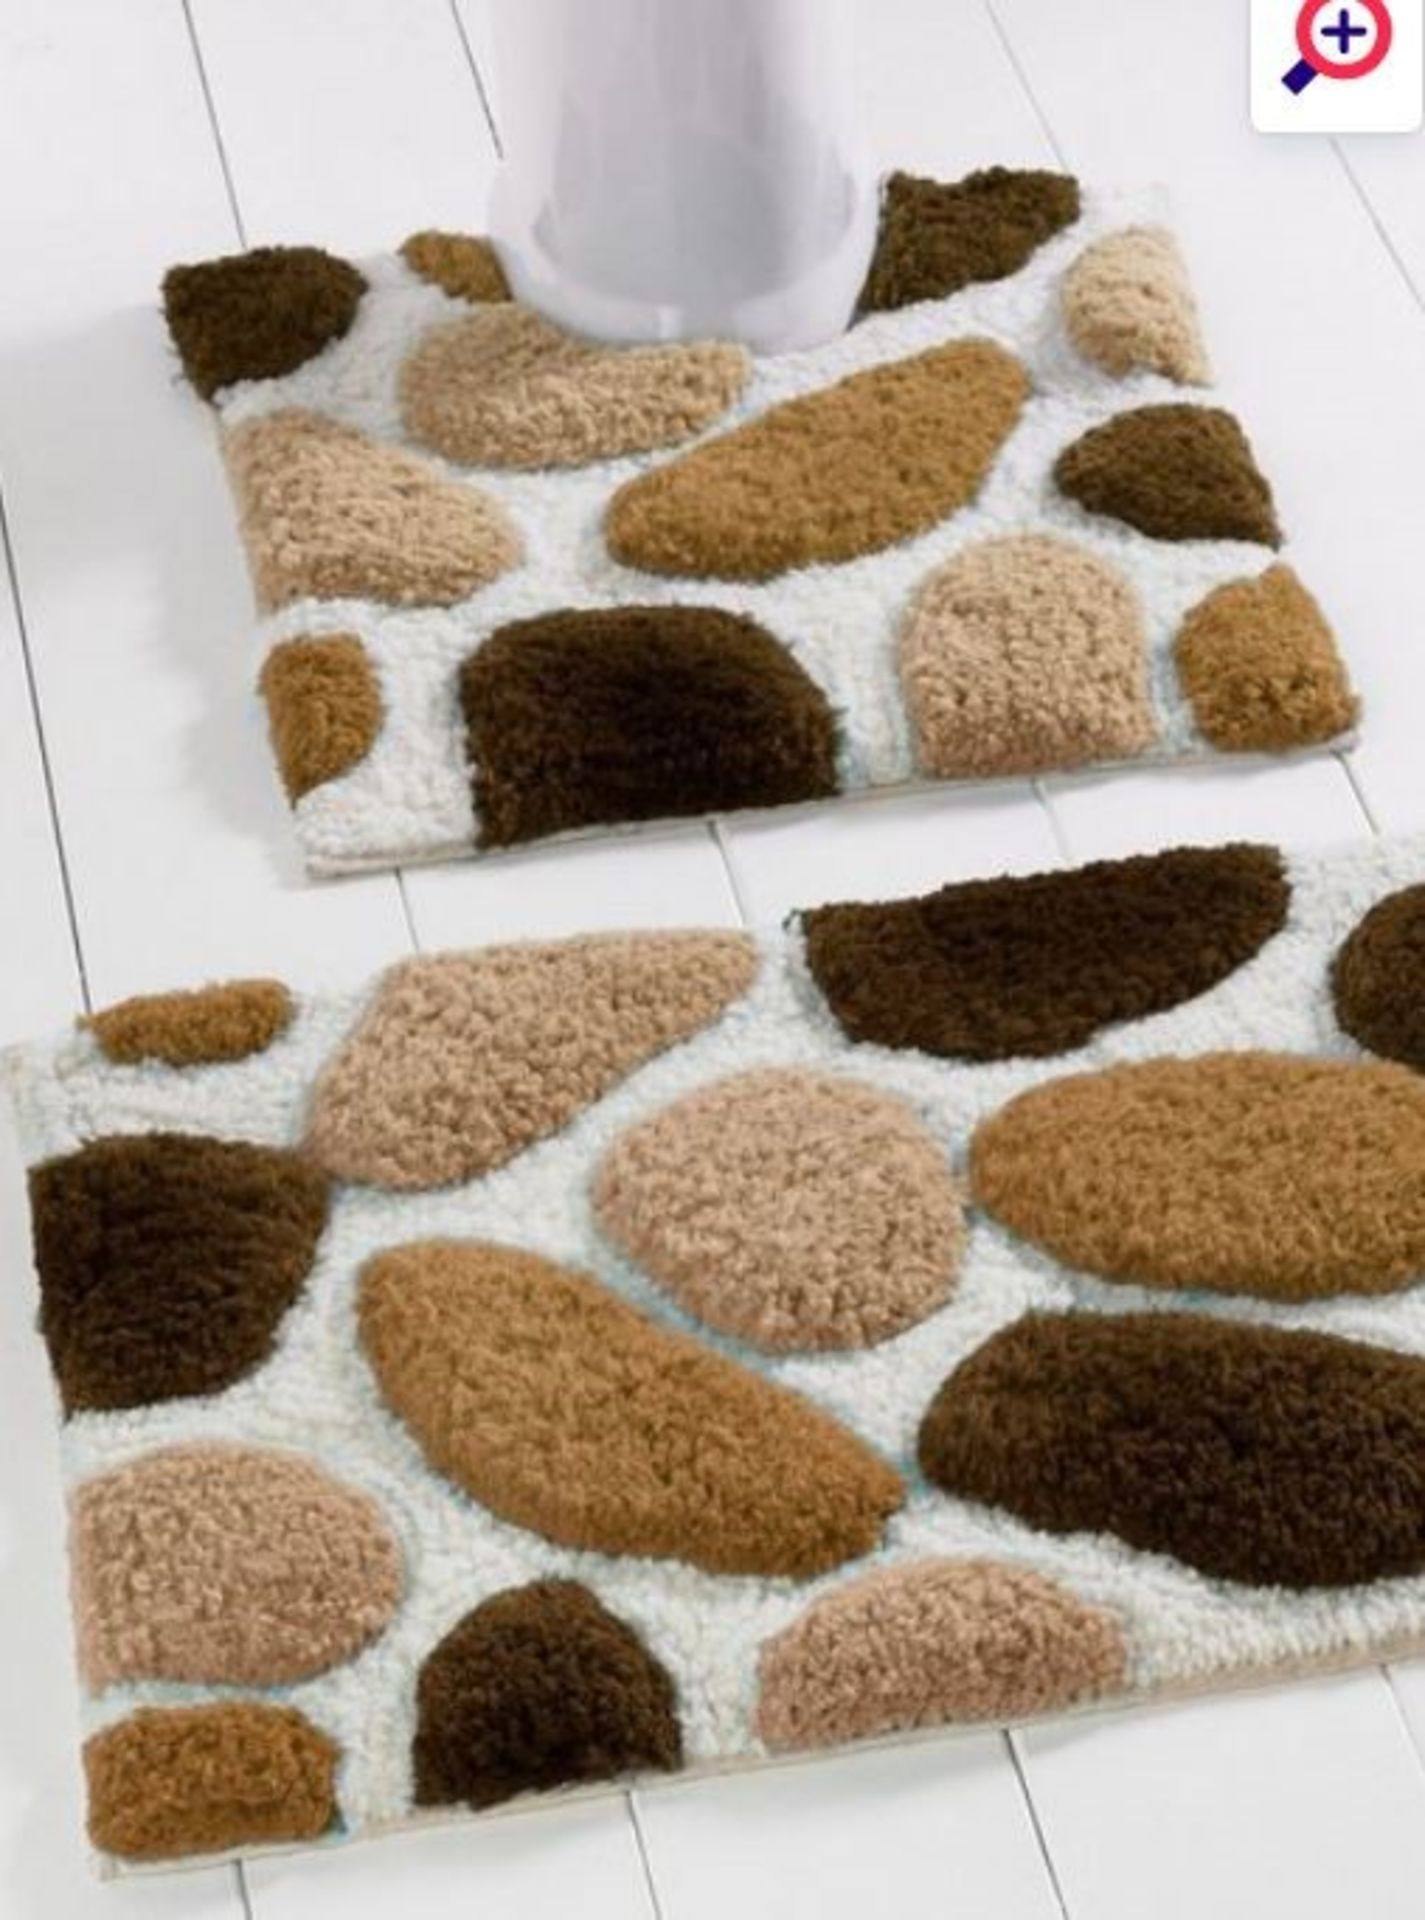 Lot 51 - 1 AS NEW BAGGED PEBBLE BATH MAT SET IN NATURAL (PUBLIC VIEWING AVAILABLE)